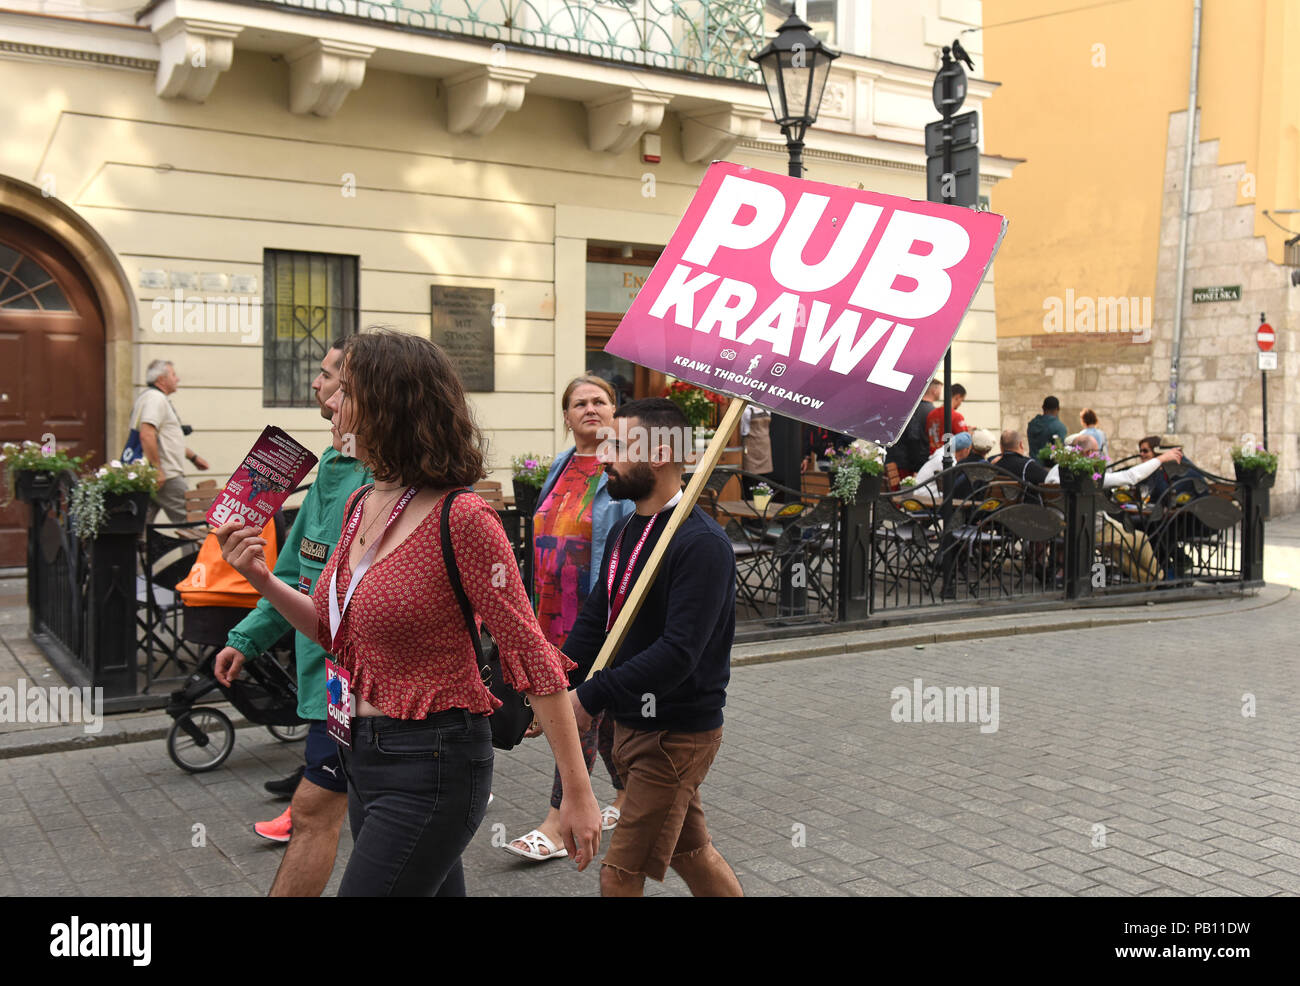 People advertising a pub crawl in Krakow Poland - Stock Image